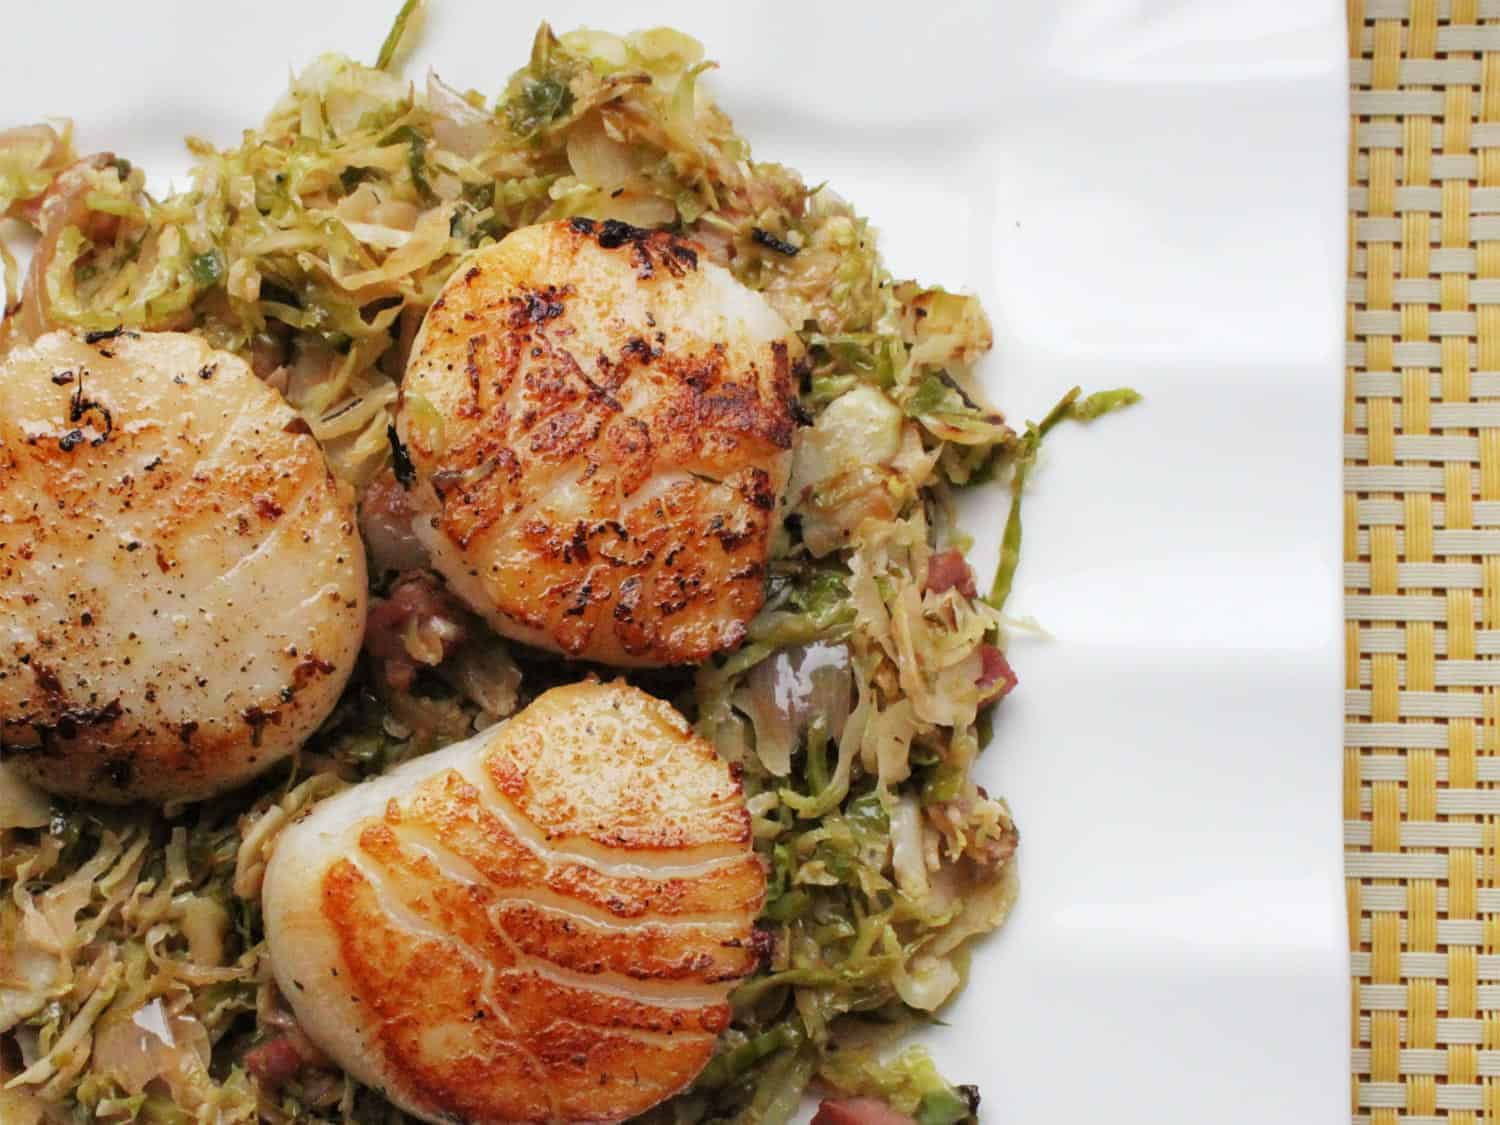 Seared Scallops with Pancetta and Brussel Sprouts